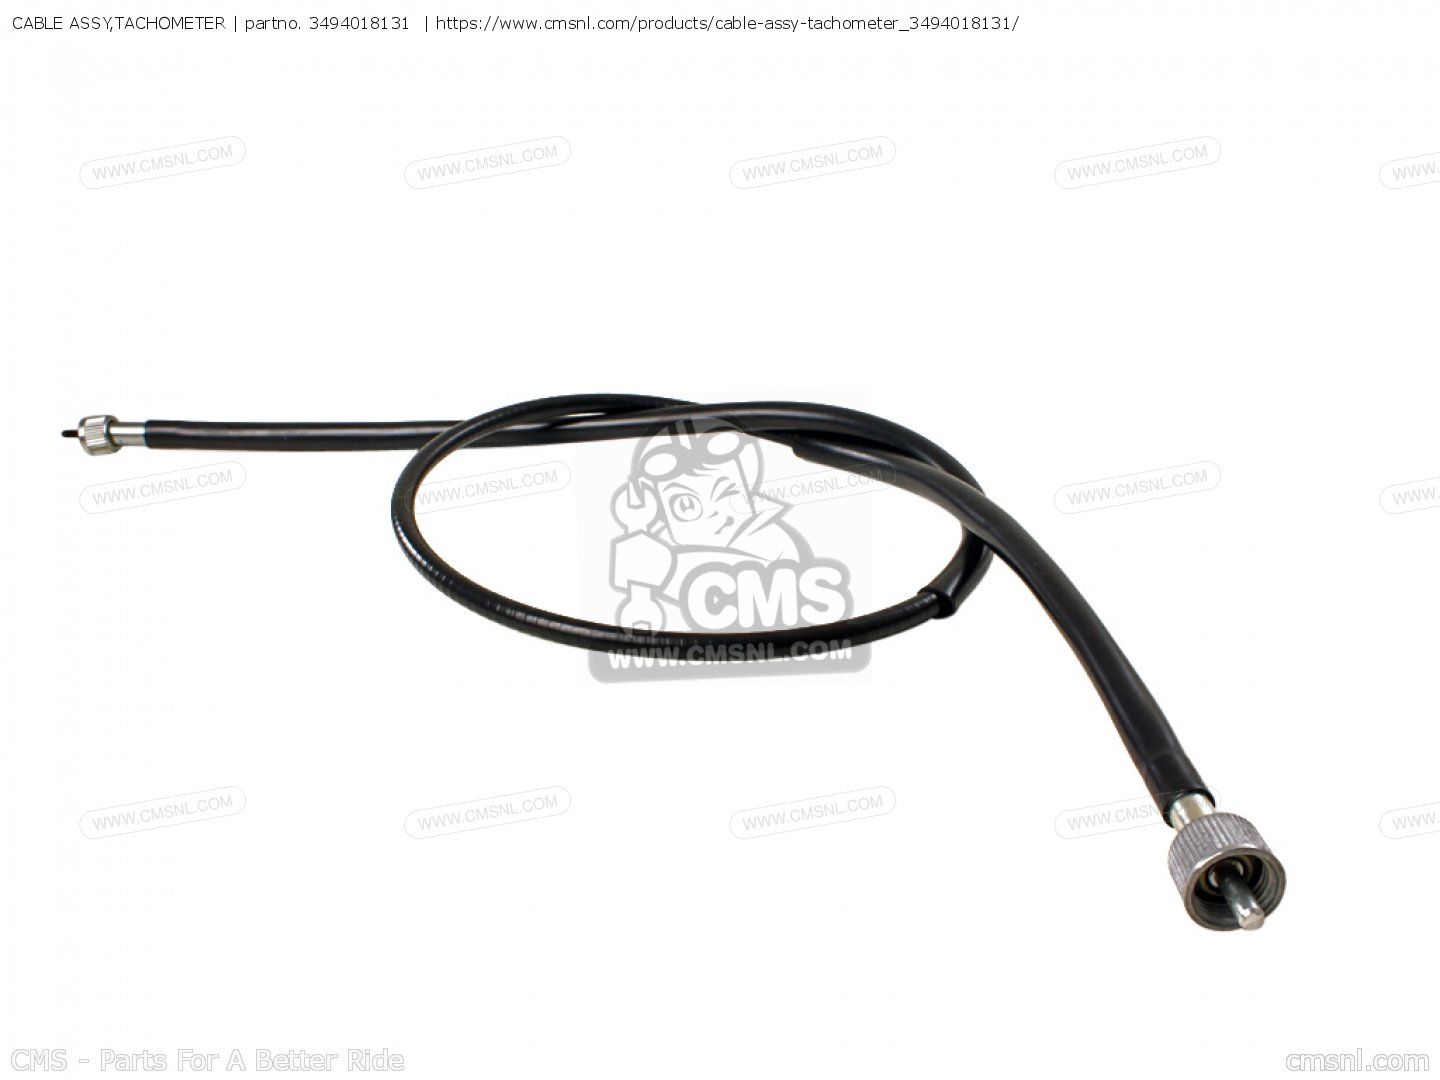 Cable Assy Tachometer For Gt750 J Usa E03